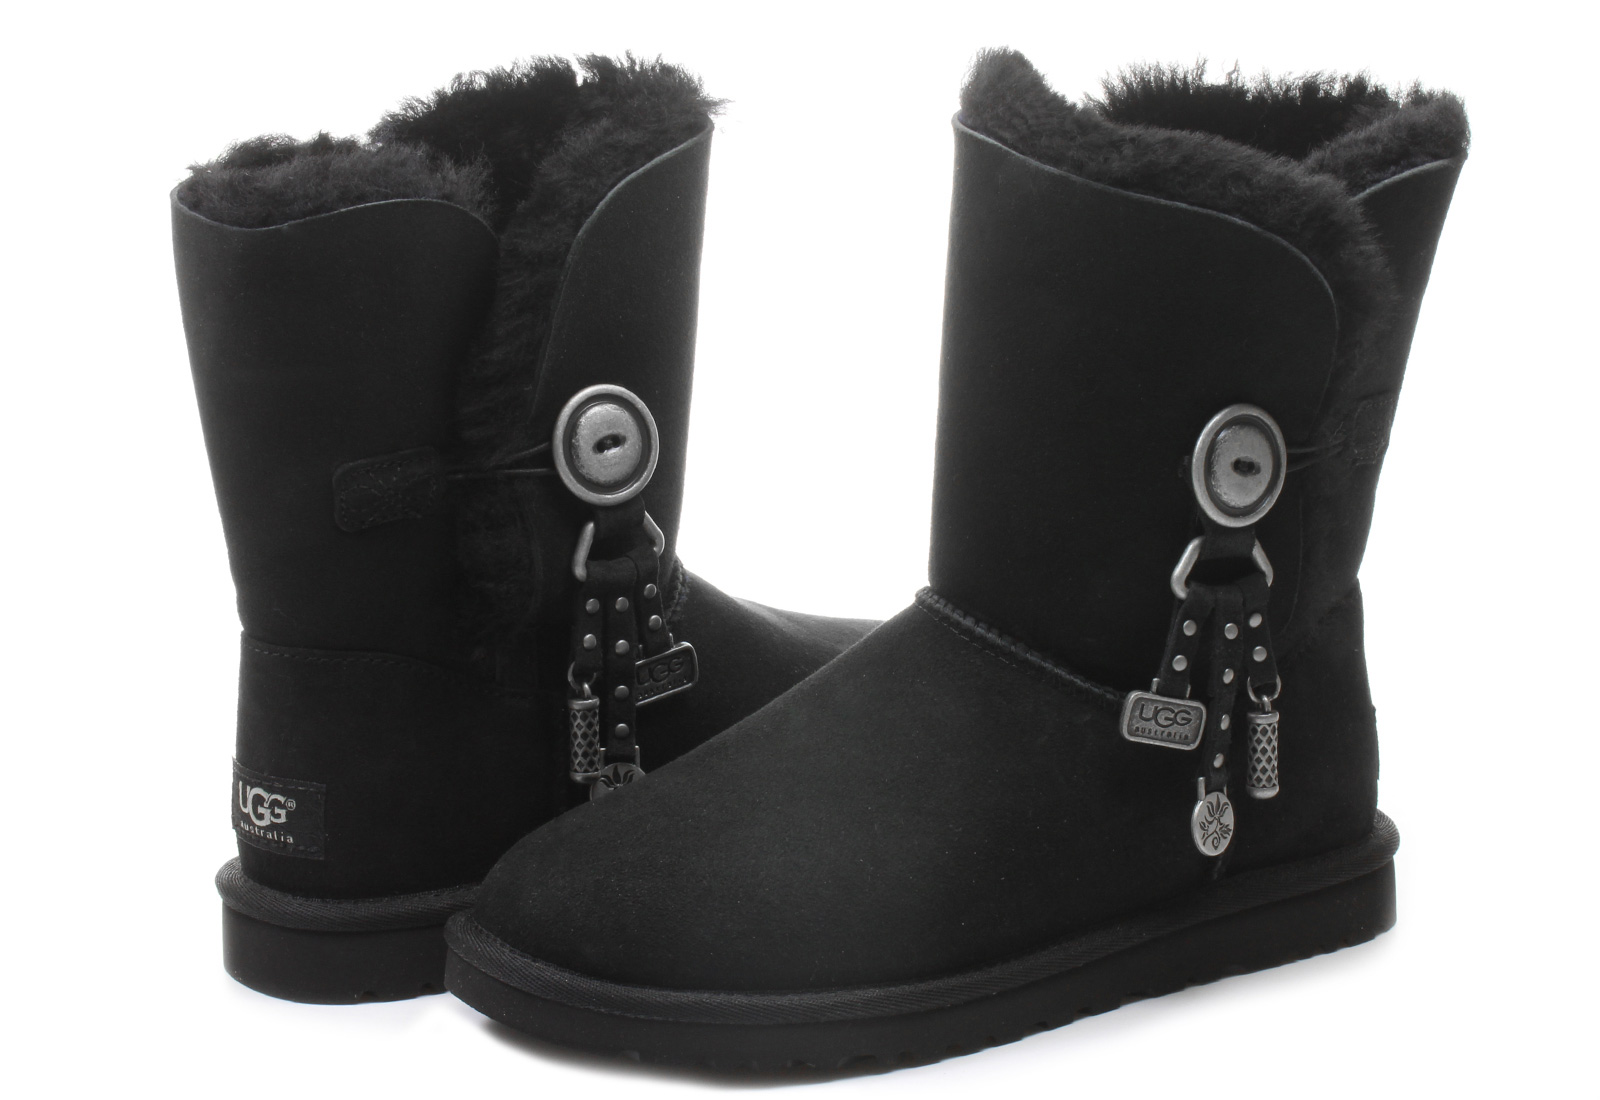 Ugg Boots W Azalea 1005382 Blk Online Shop For